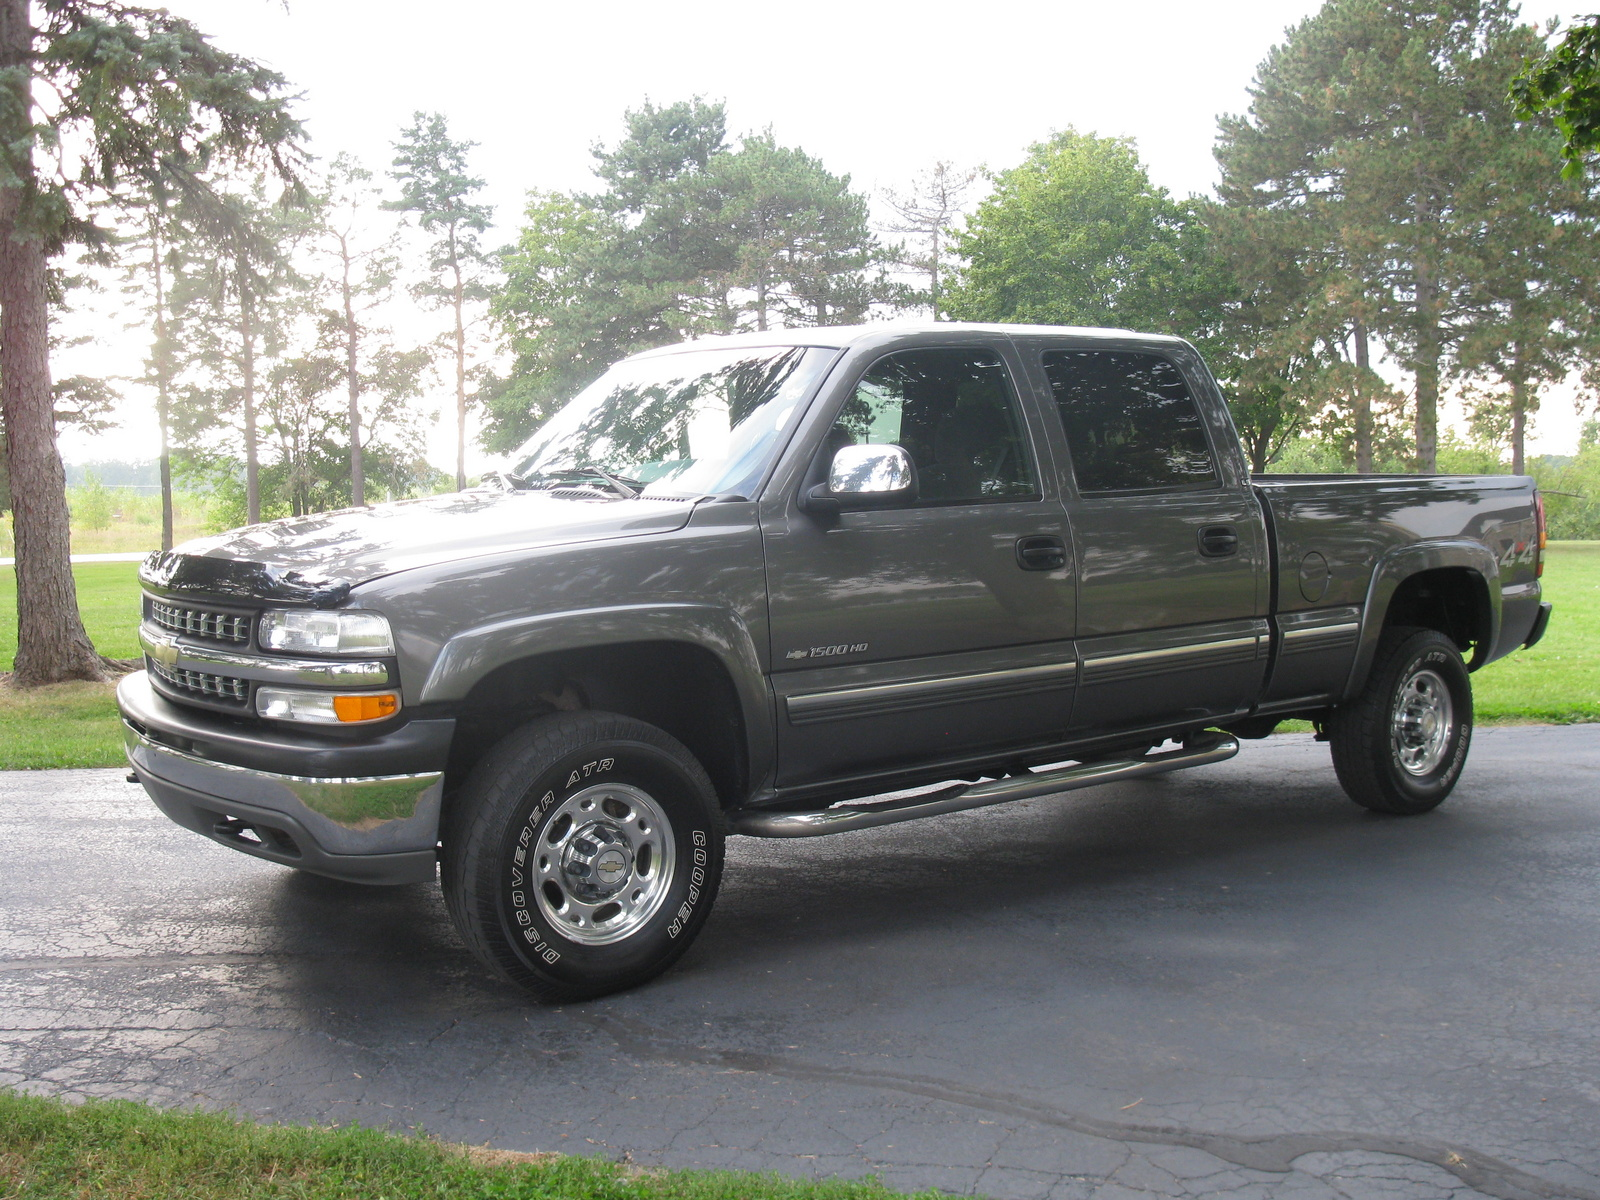 Picture of 2002 Chevrolet Silverado 1500HD LS Crew Cab Short Bed 4WD